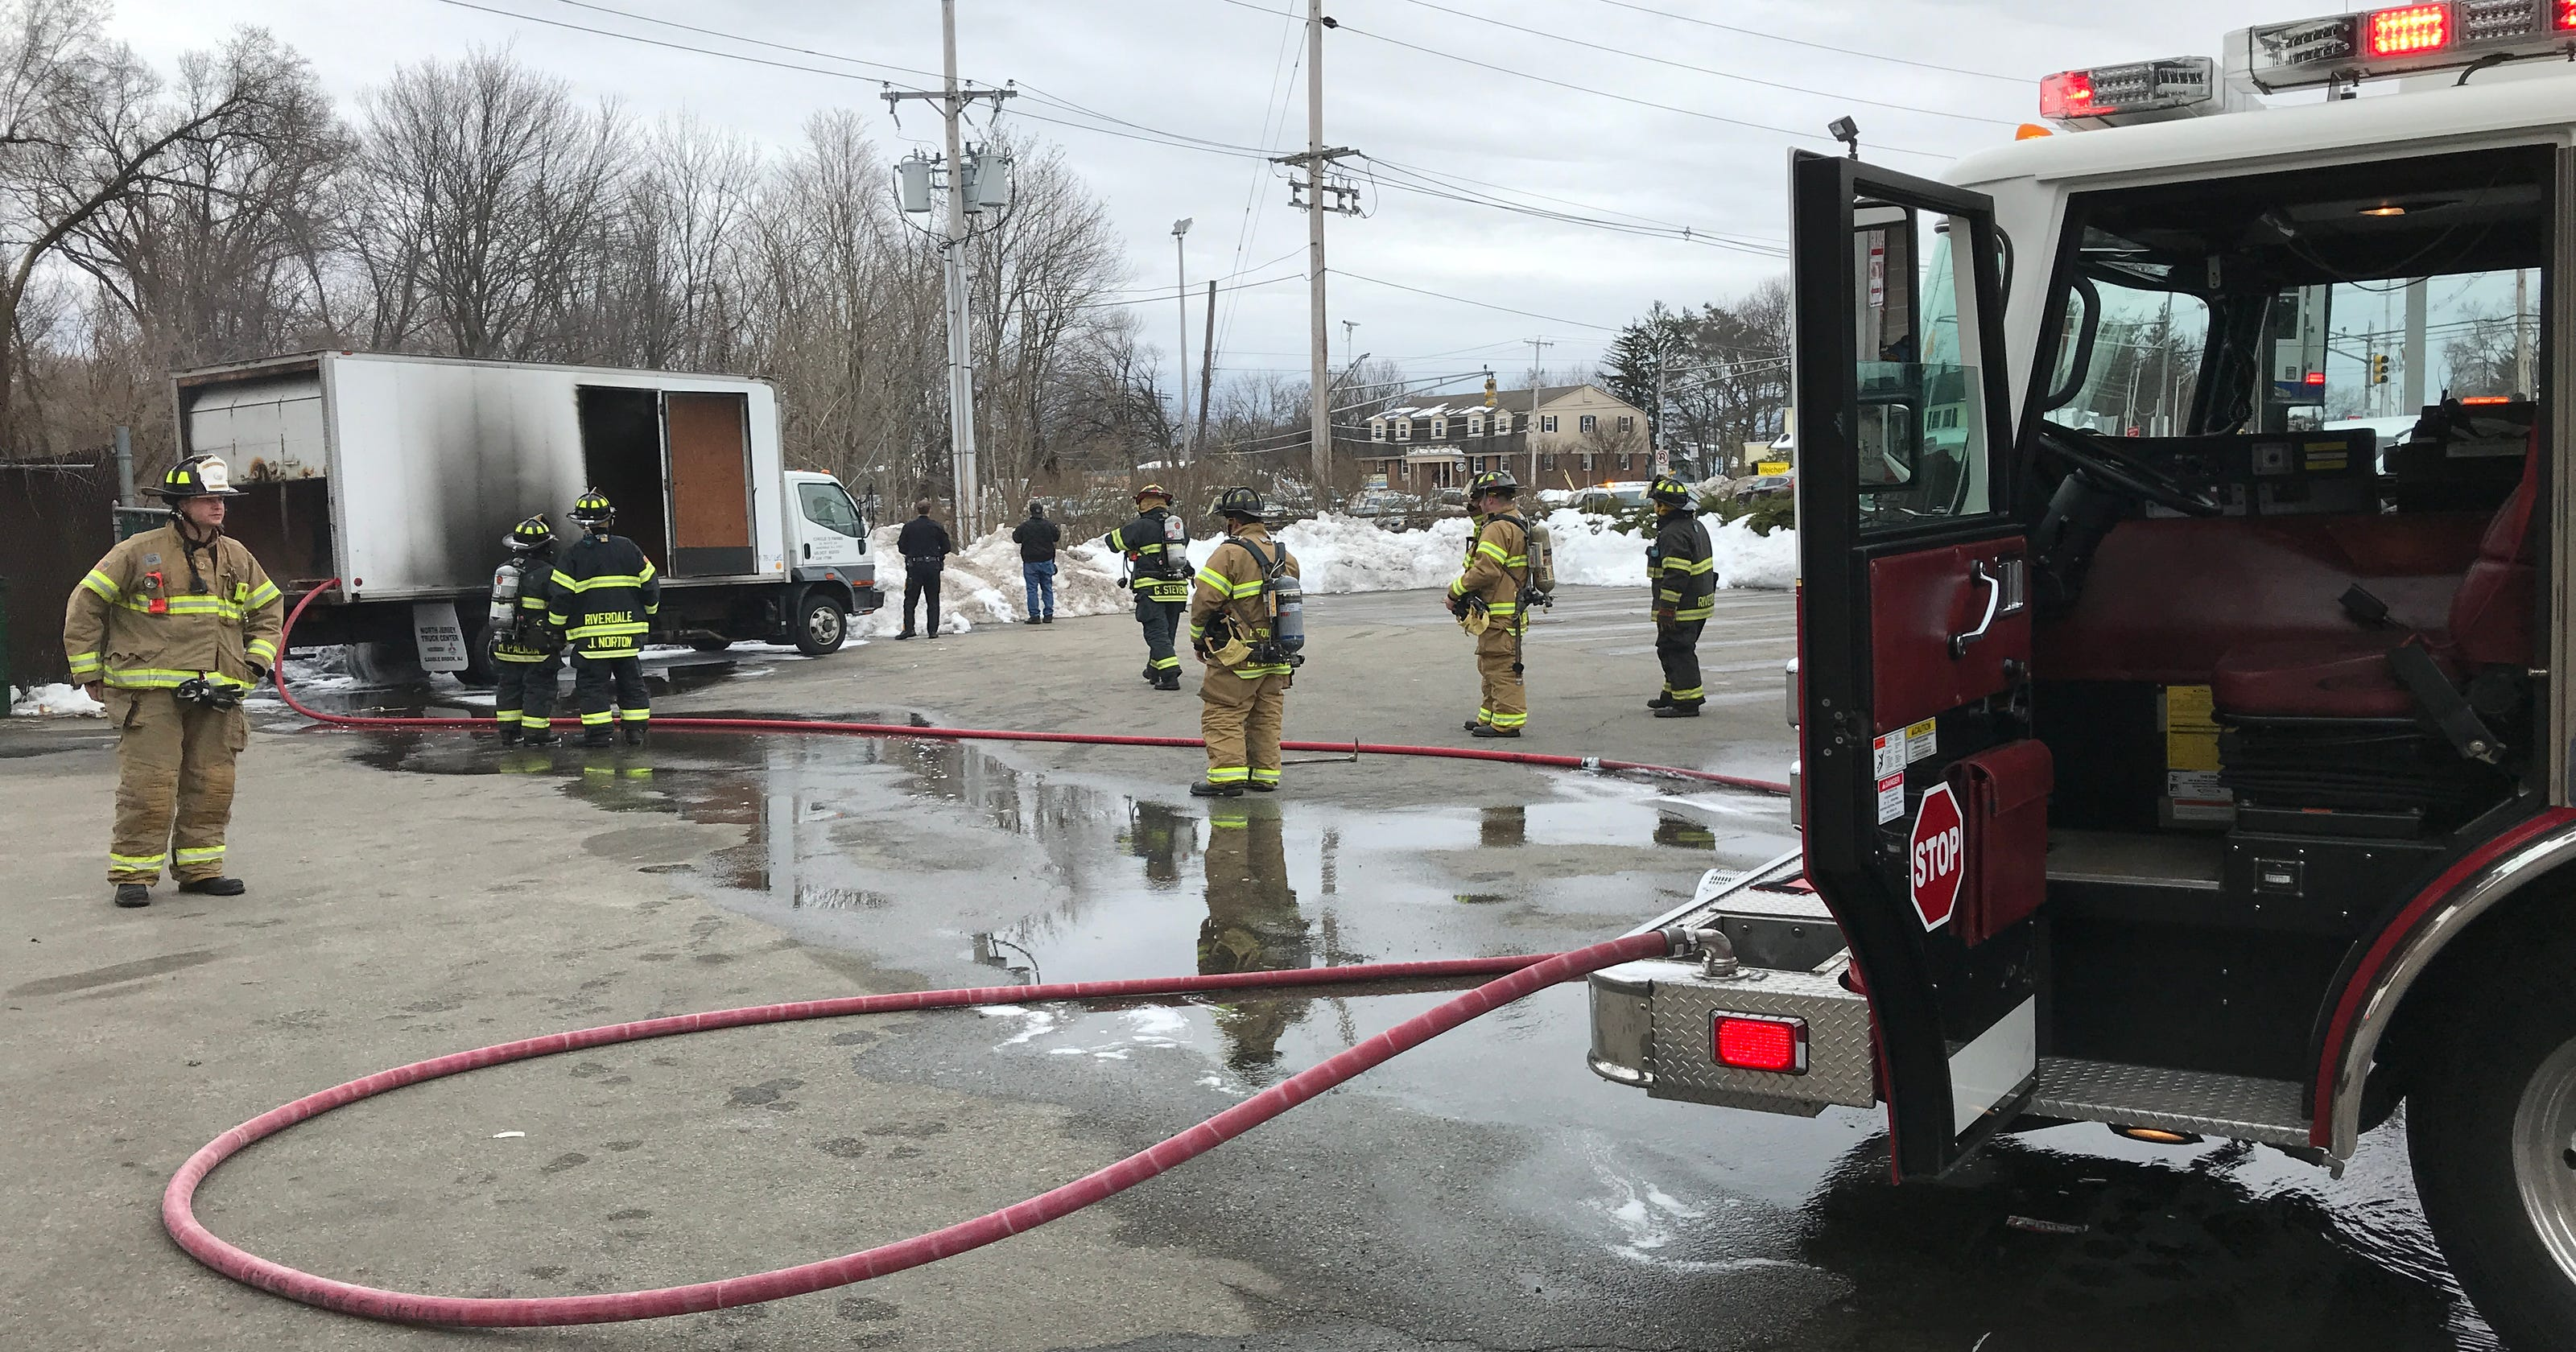 Watch: Truck catches fire from fallen live wire in Pequannock